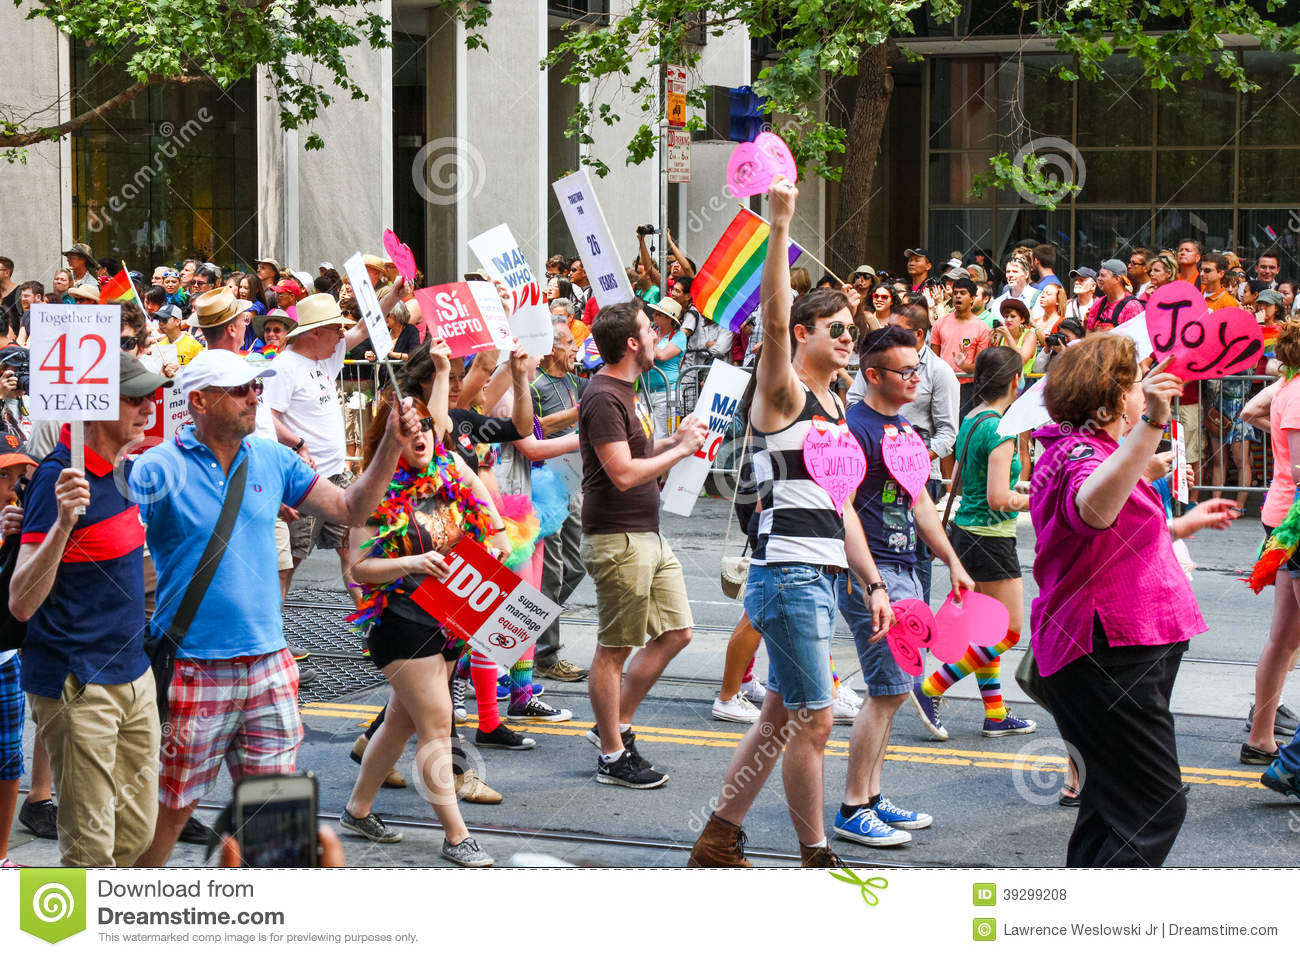 from Jaden history of the gay pride parade